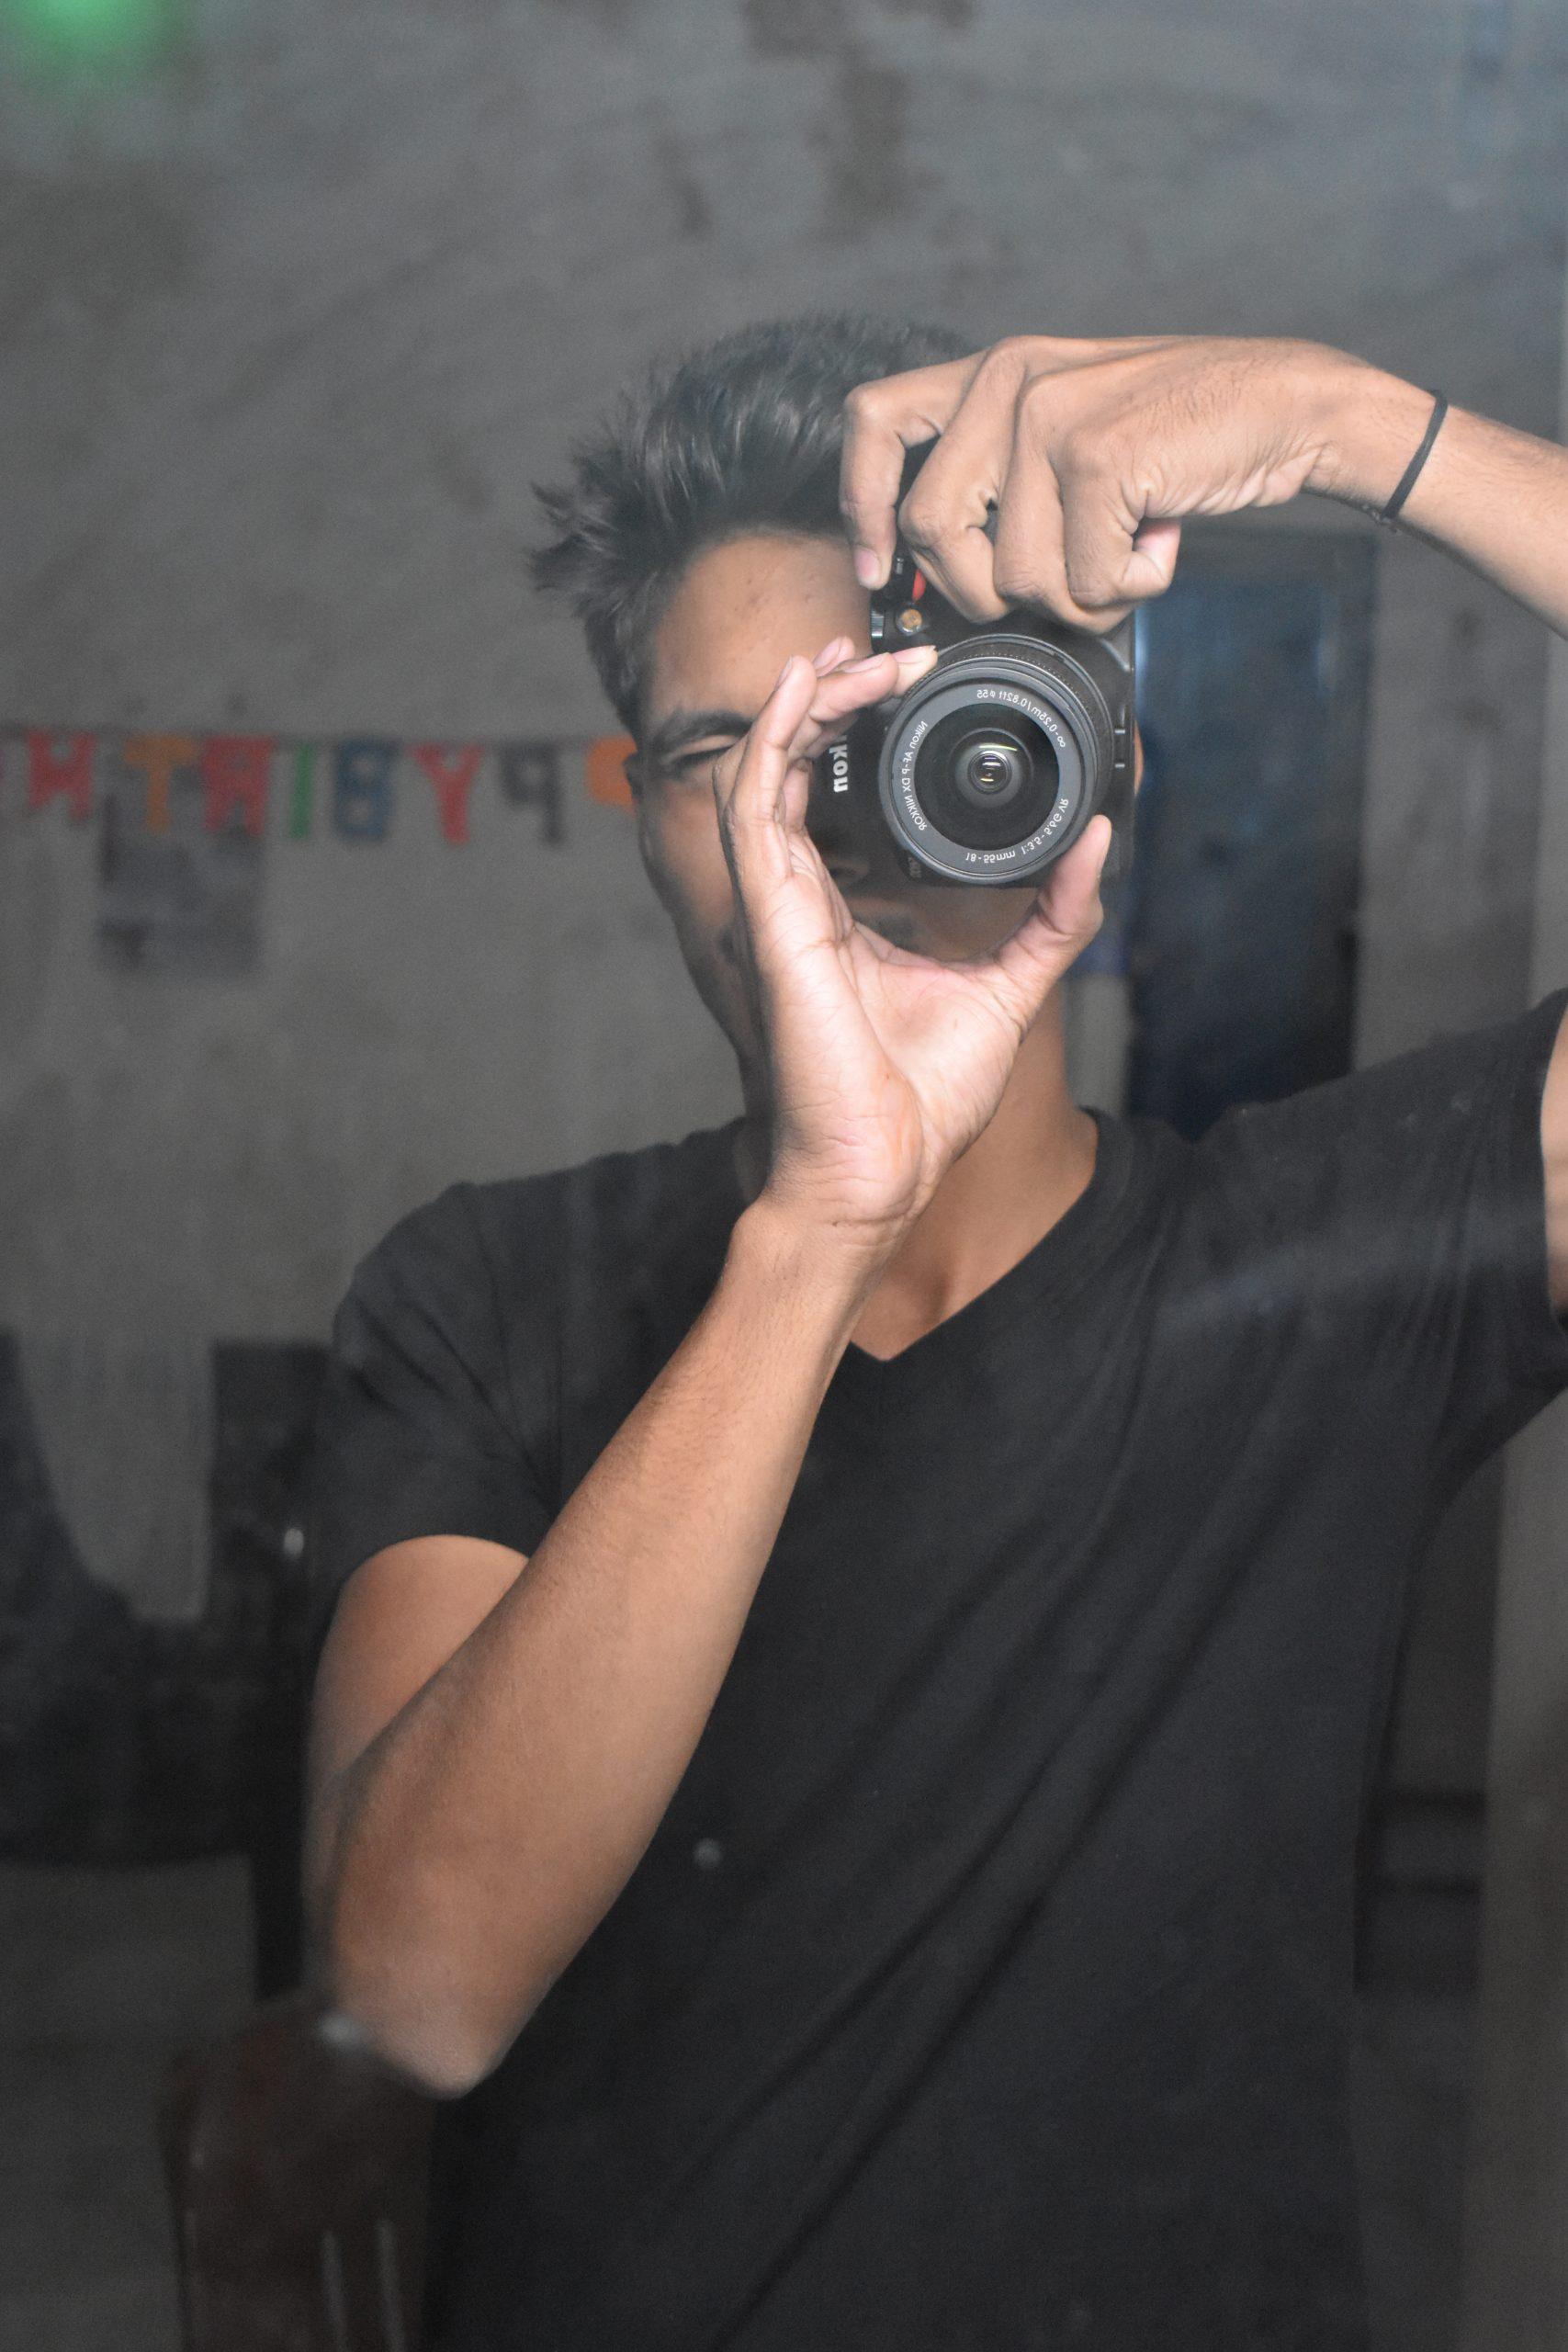 A photographer taking an image